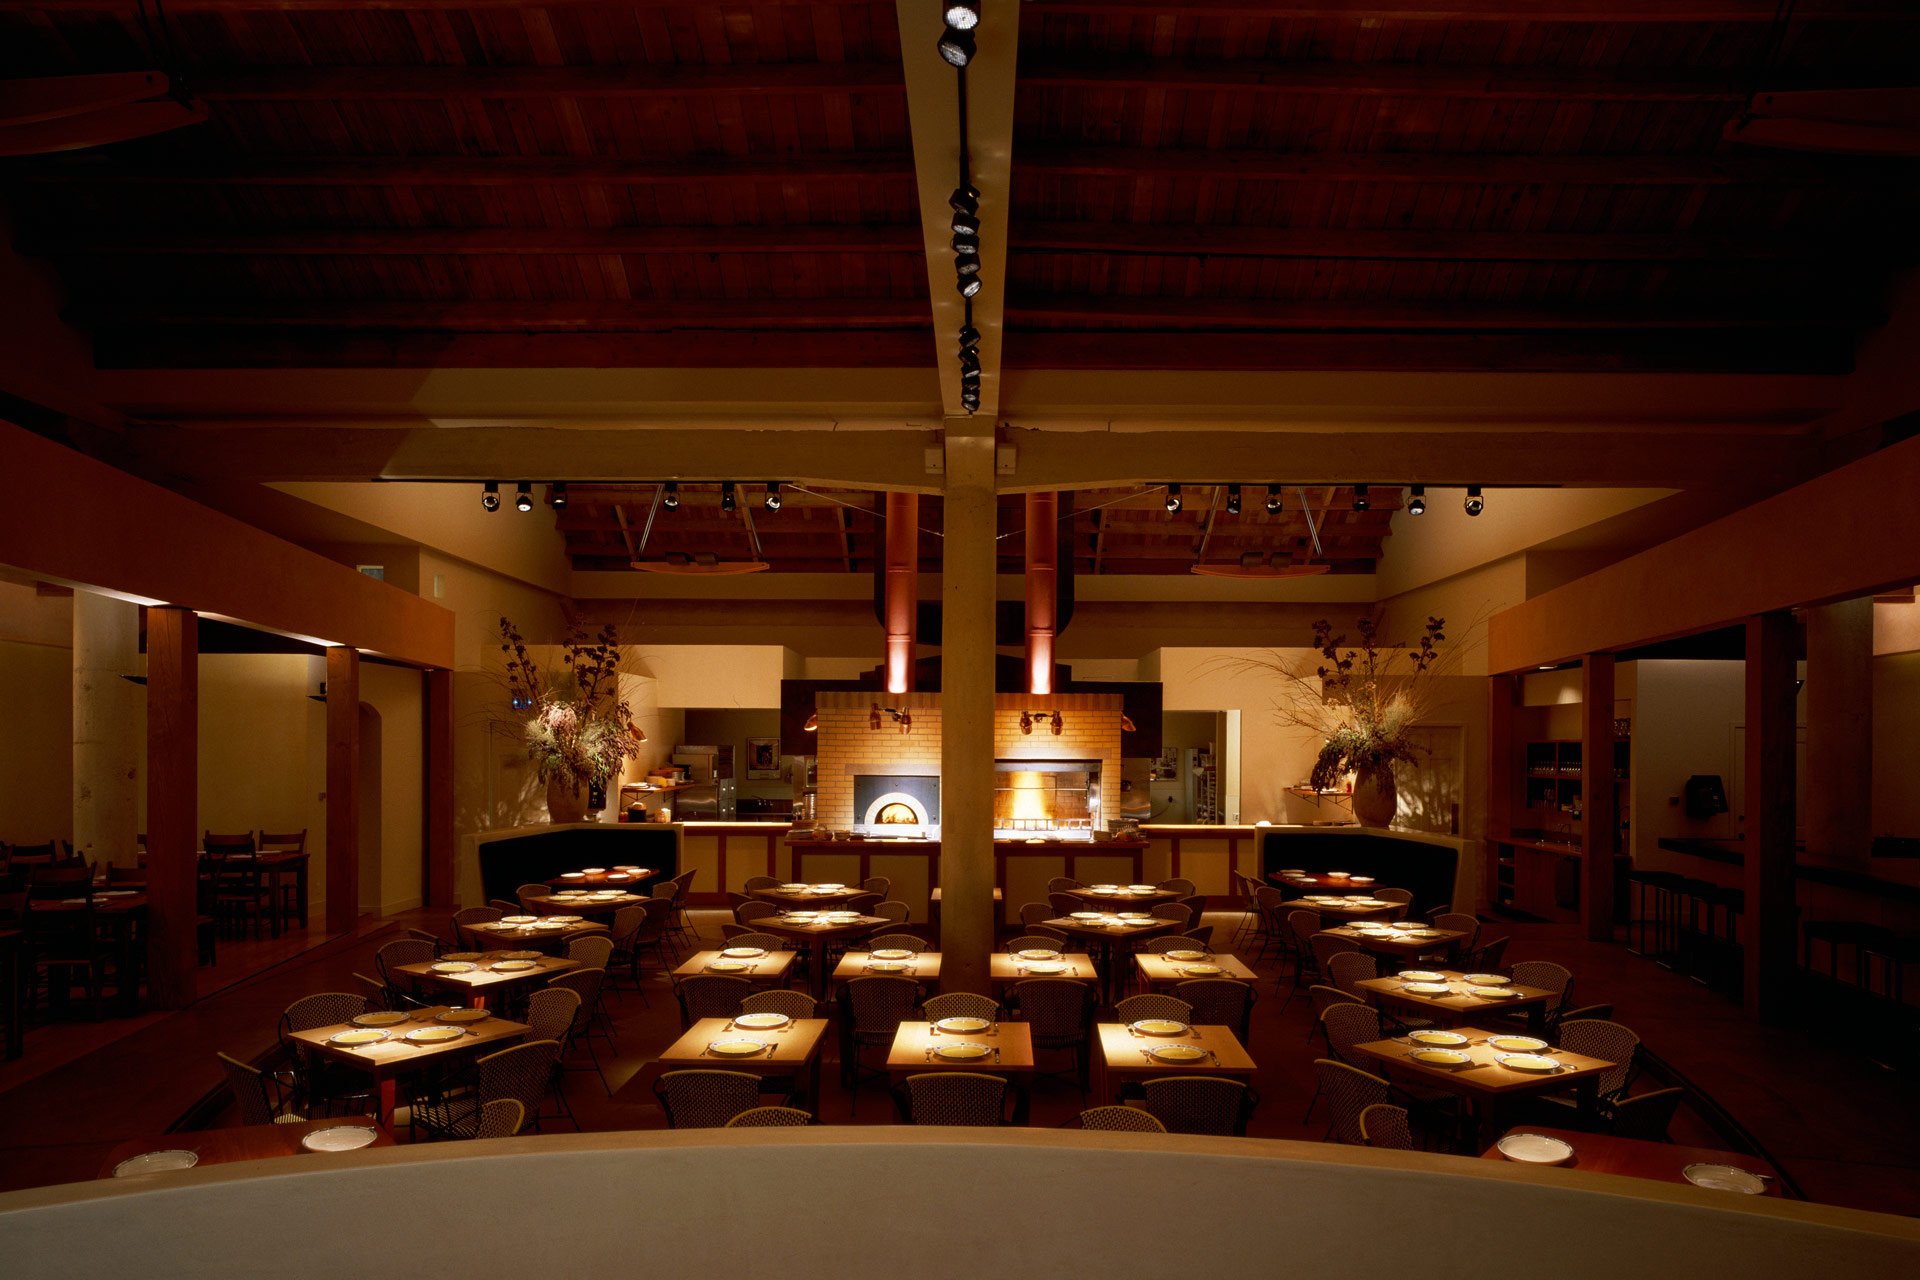 Lulu restaurant interiors